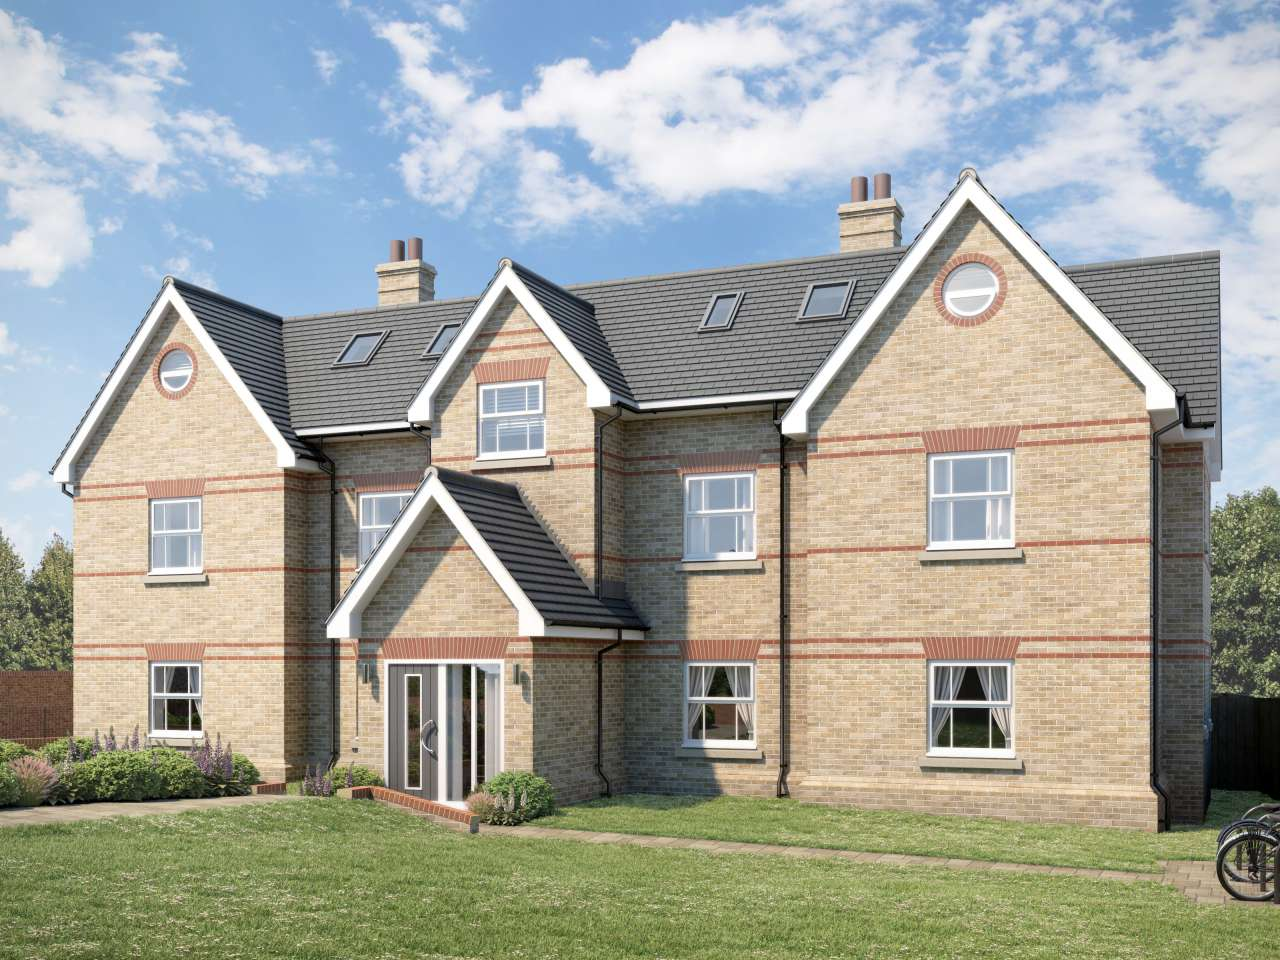 new build apartment  Garden Lane, Royston, SG8 9EG